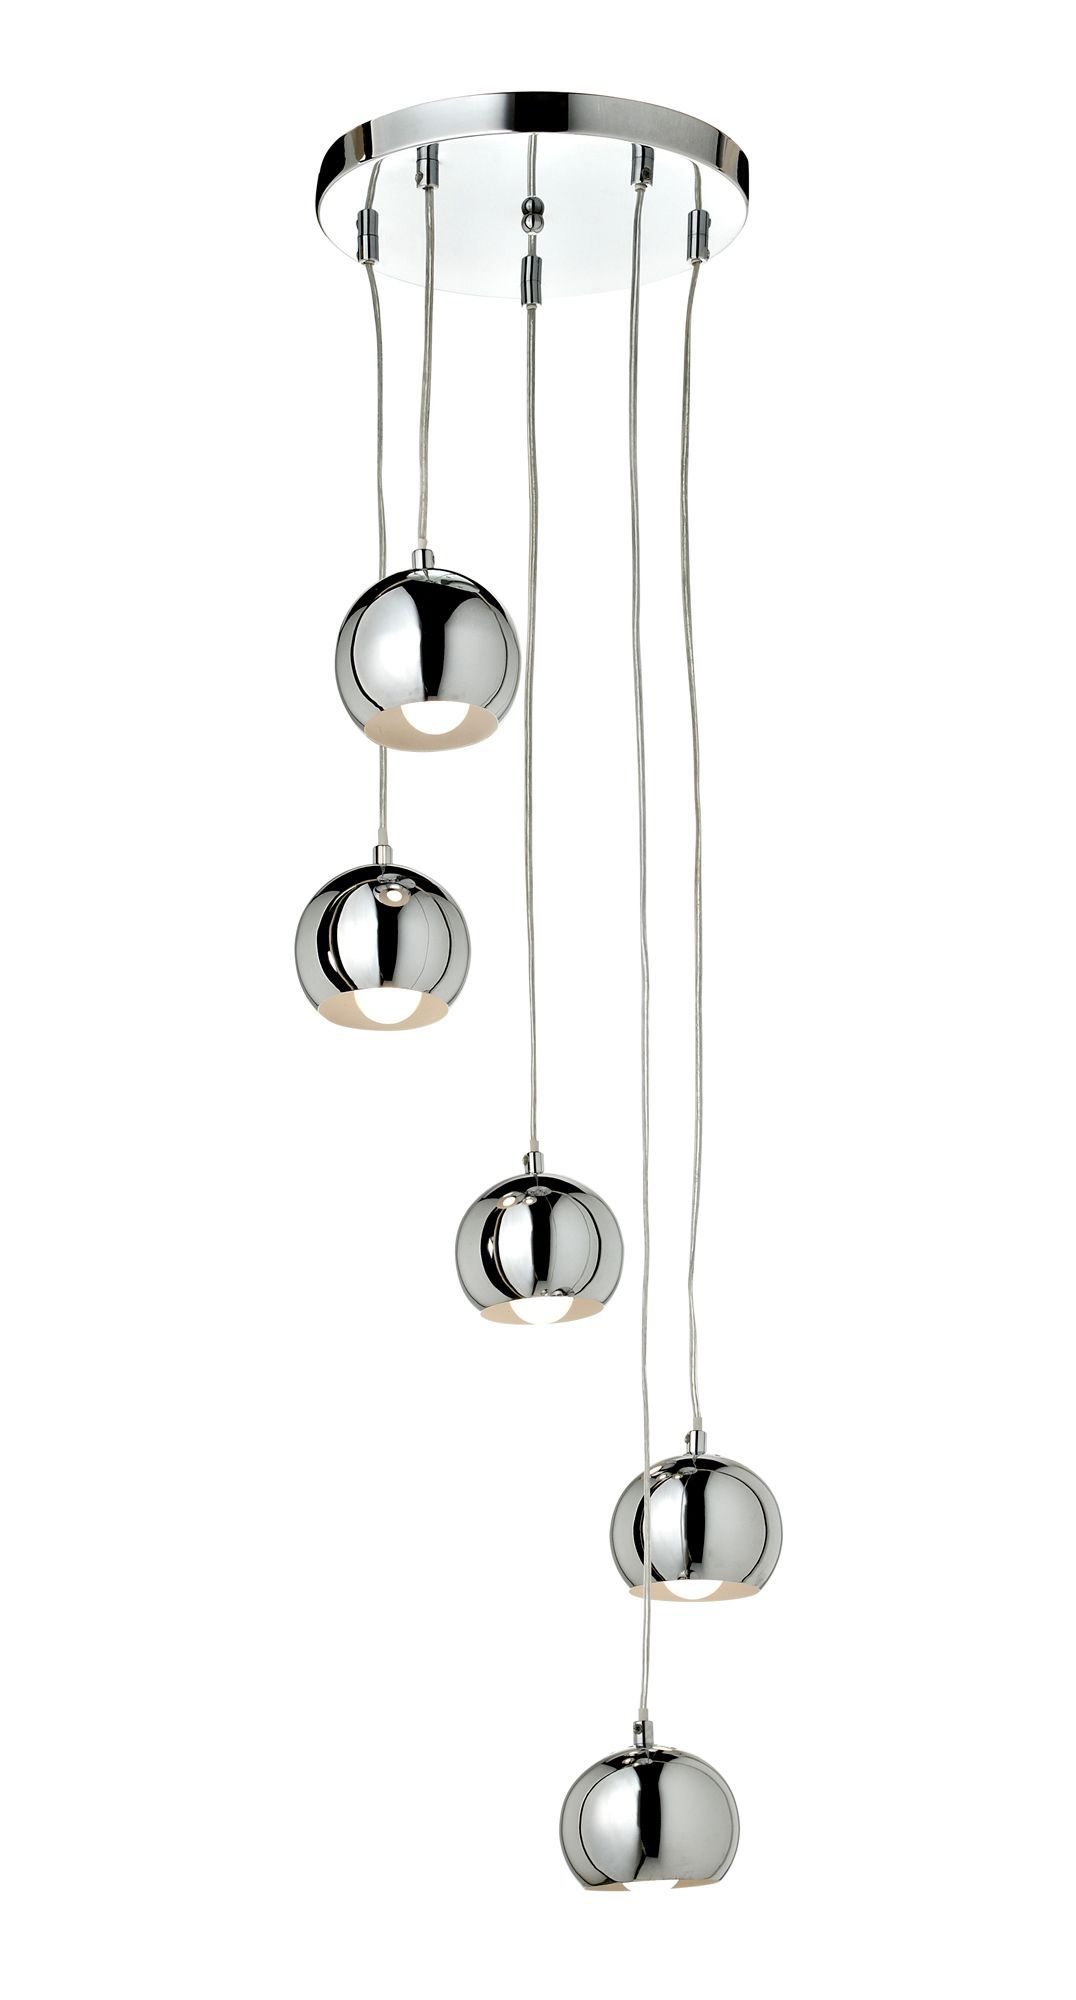 Cascade chrome effect 5 lamp ceiling light departments diy at bq aloadofball Choice Image